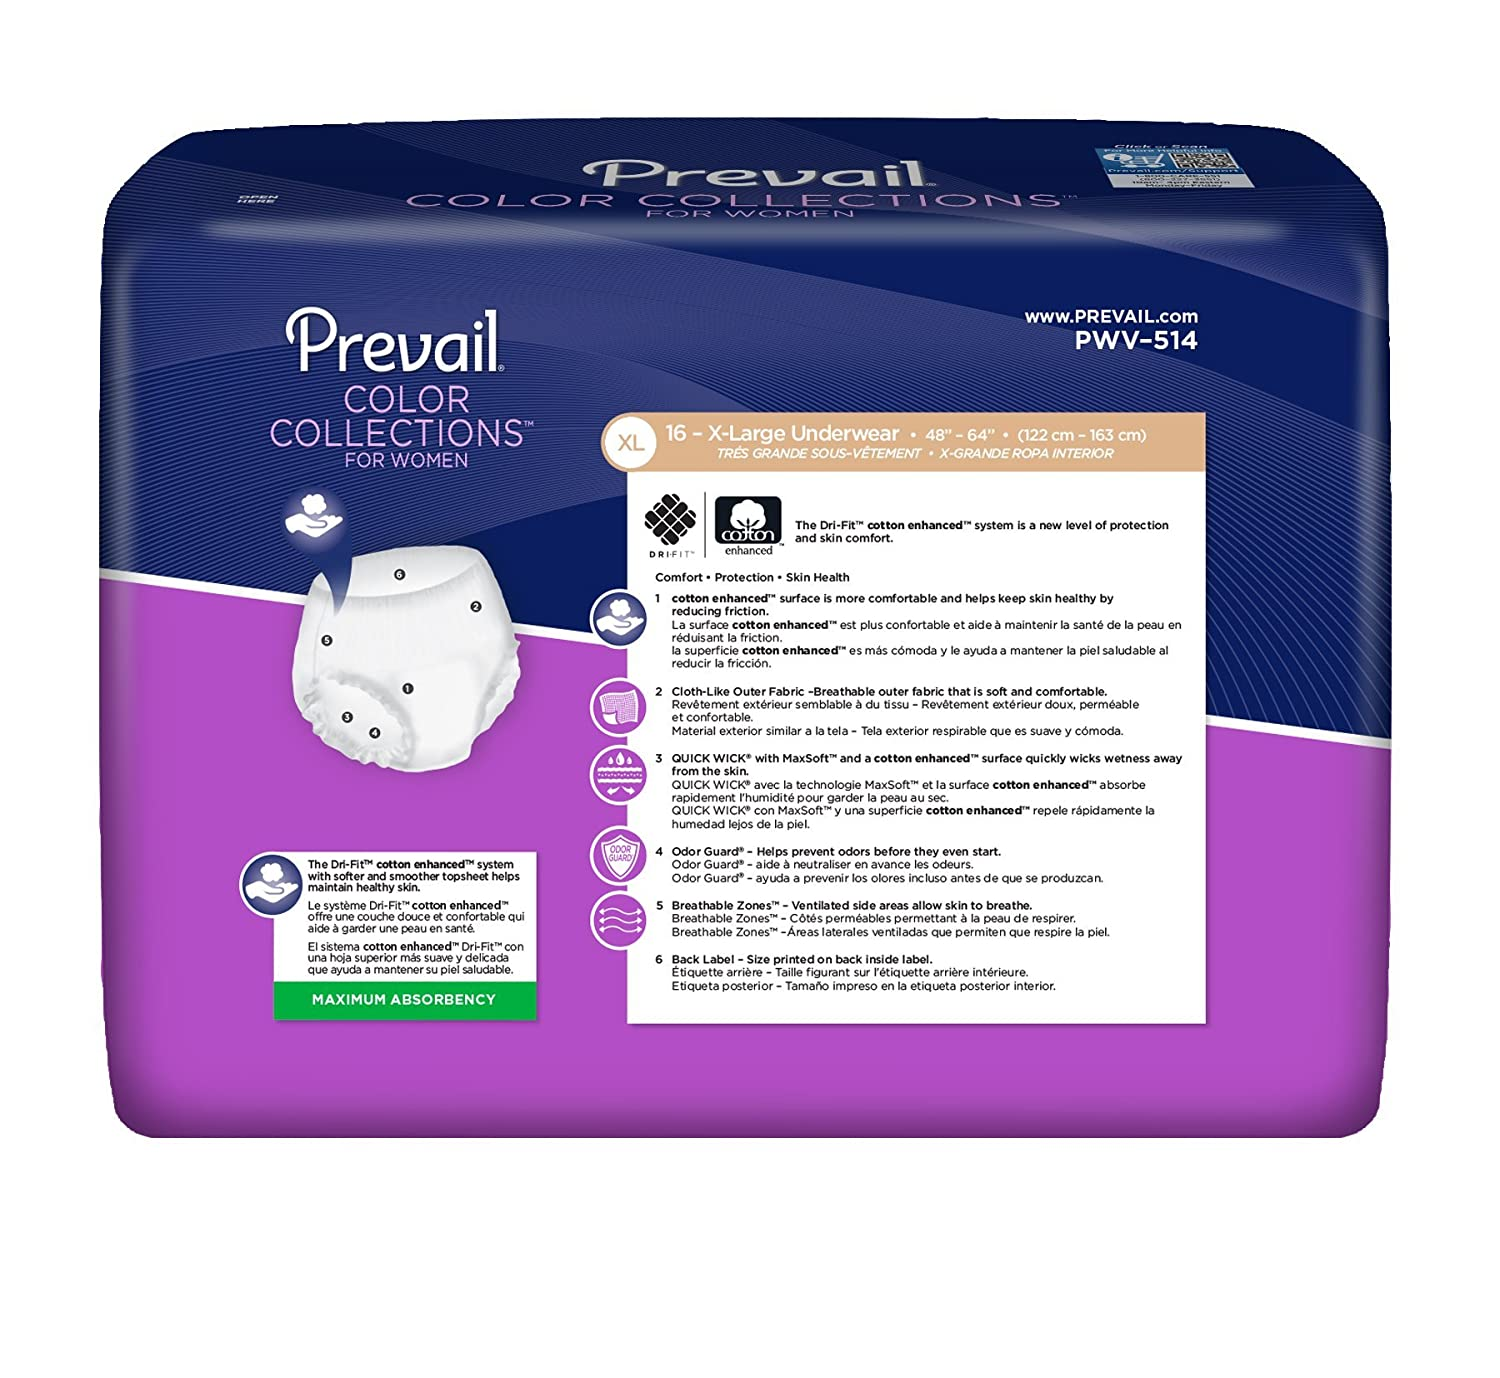 Amazon.com: Prevail Color Collections Maximum Absorbency Incontinence Underwear for Women, Extra Large, 64-Count: Health & Personal Care